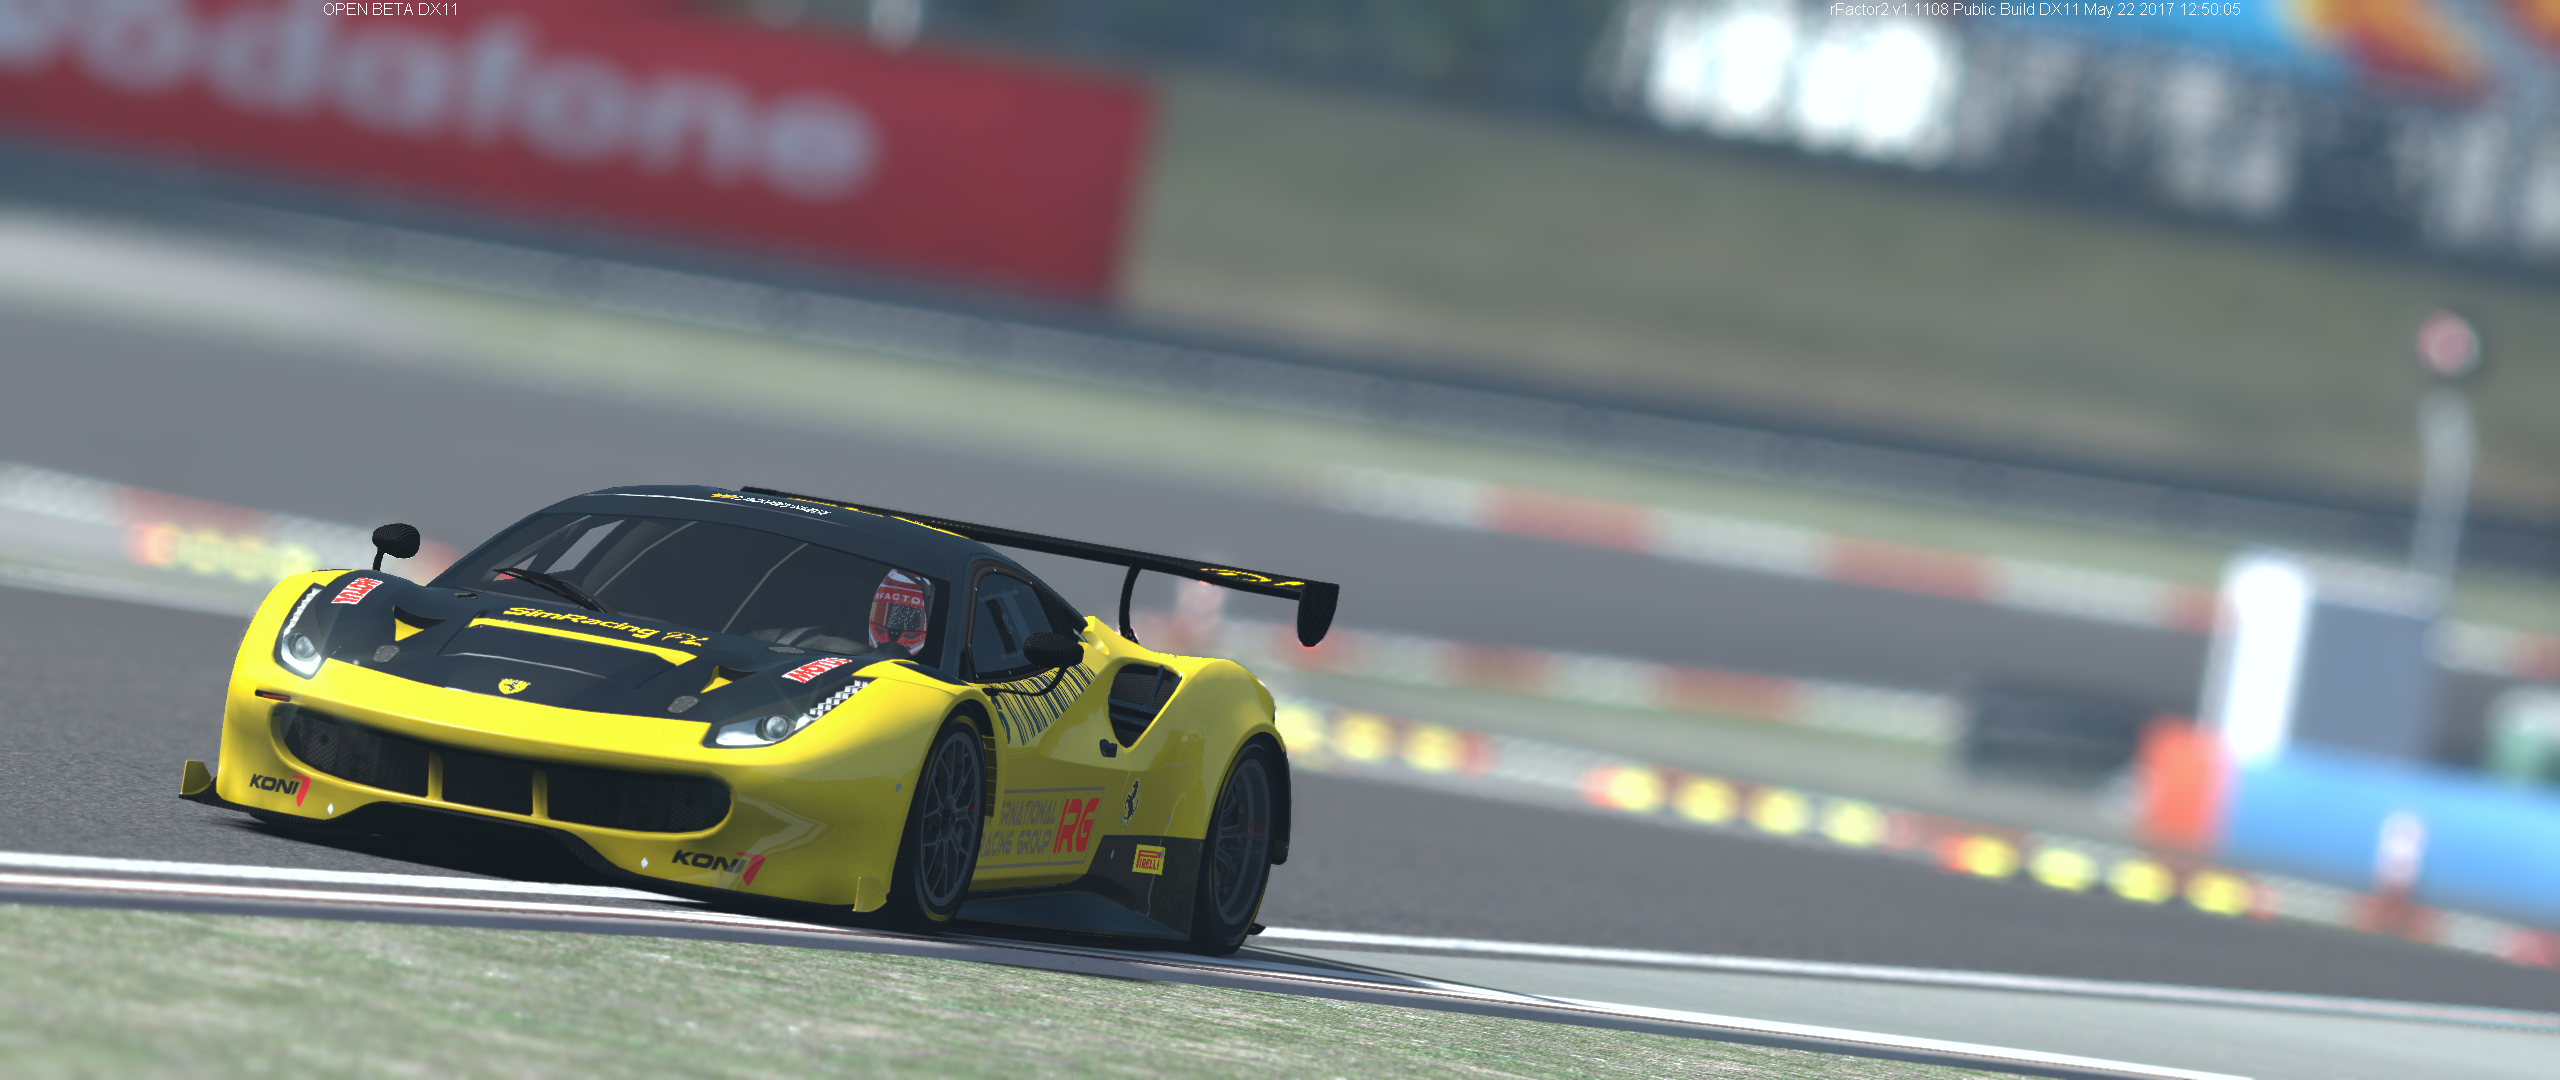 rFactor2 22-05-2017 22-36-00-550.png